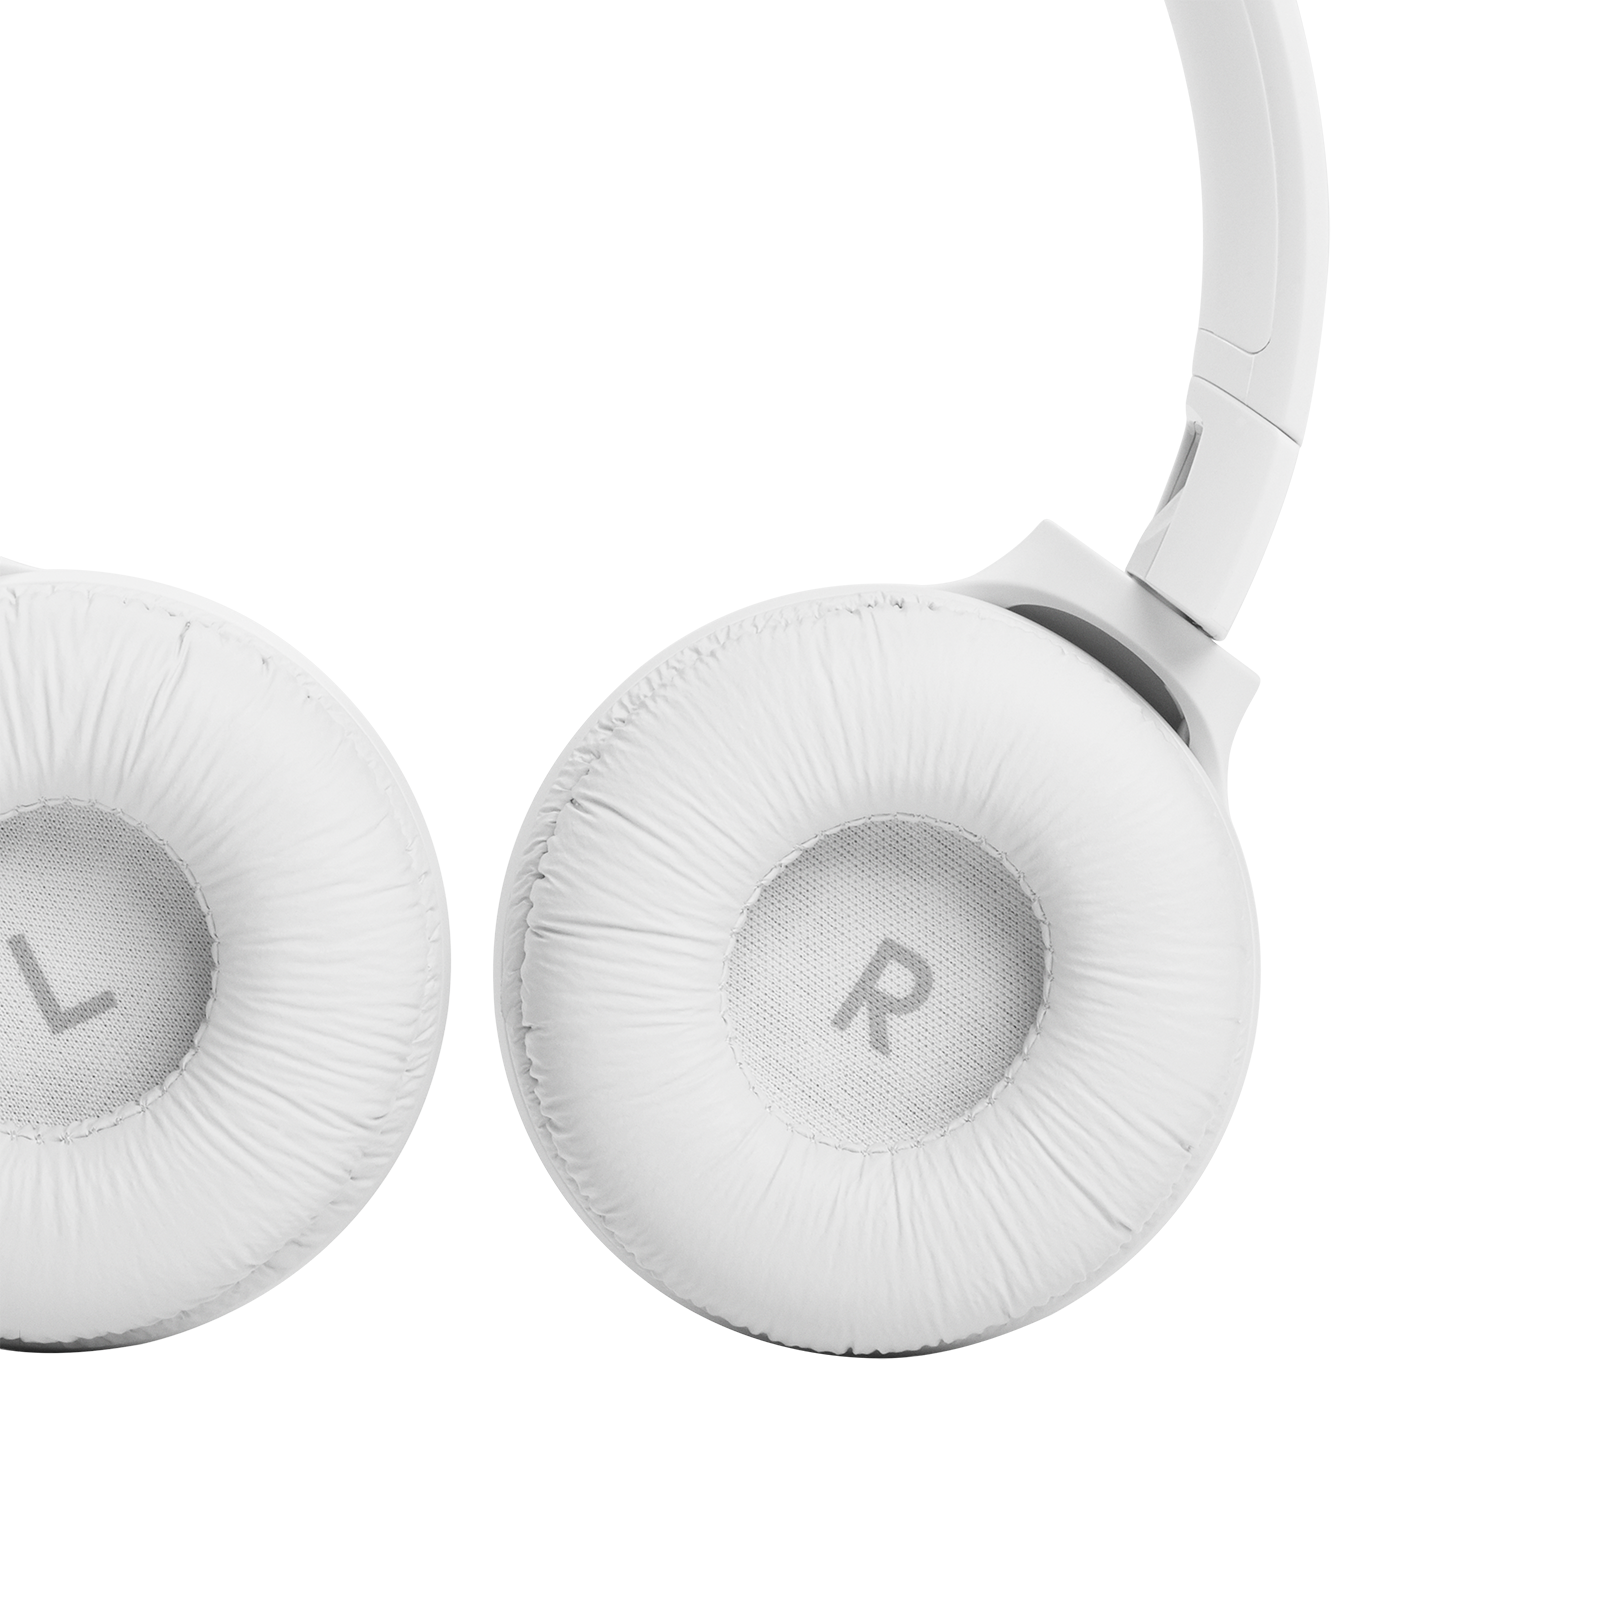 JBL Tune 510BT - White - Wireless on-ear headphones - Detailshot 2